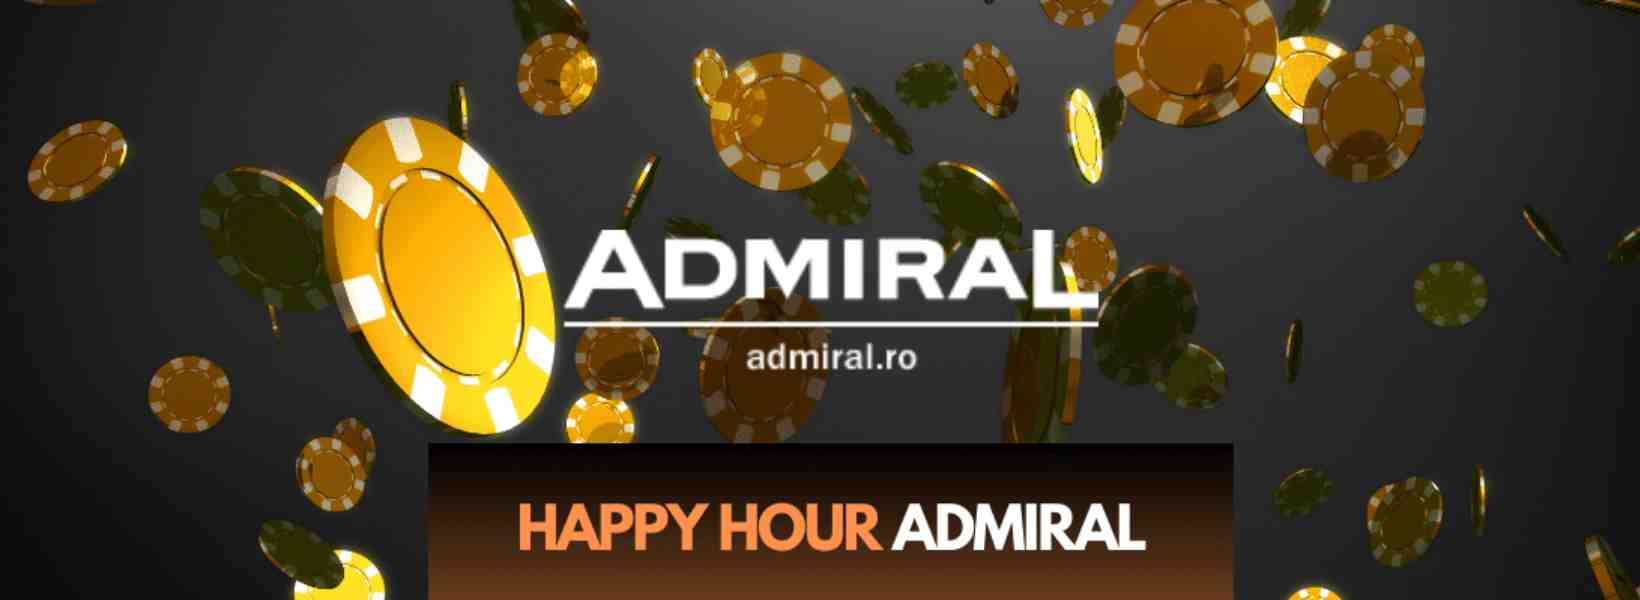 admiral happy hour